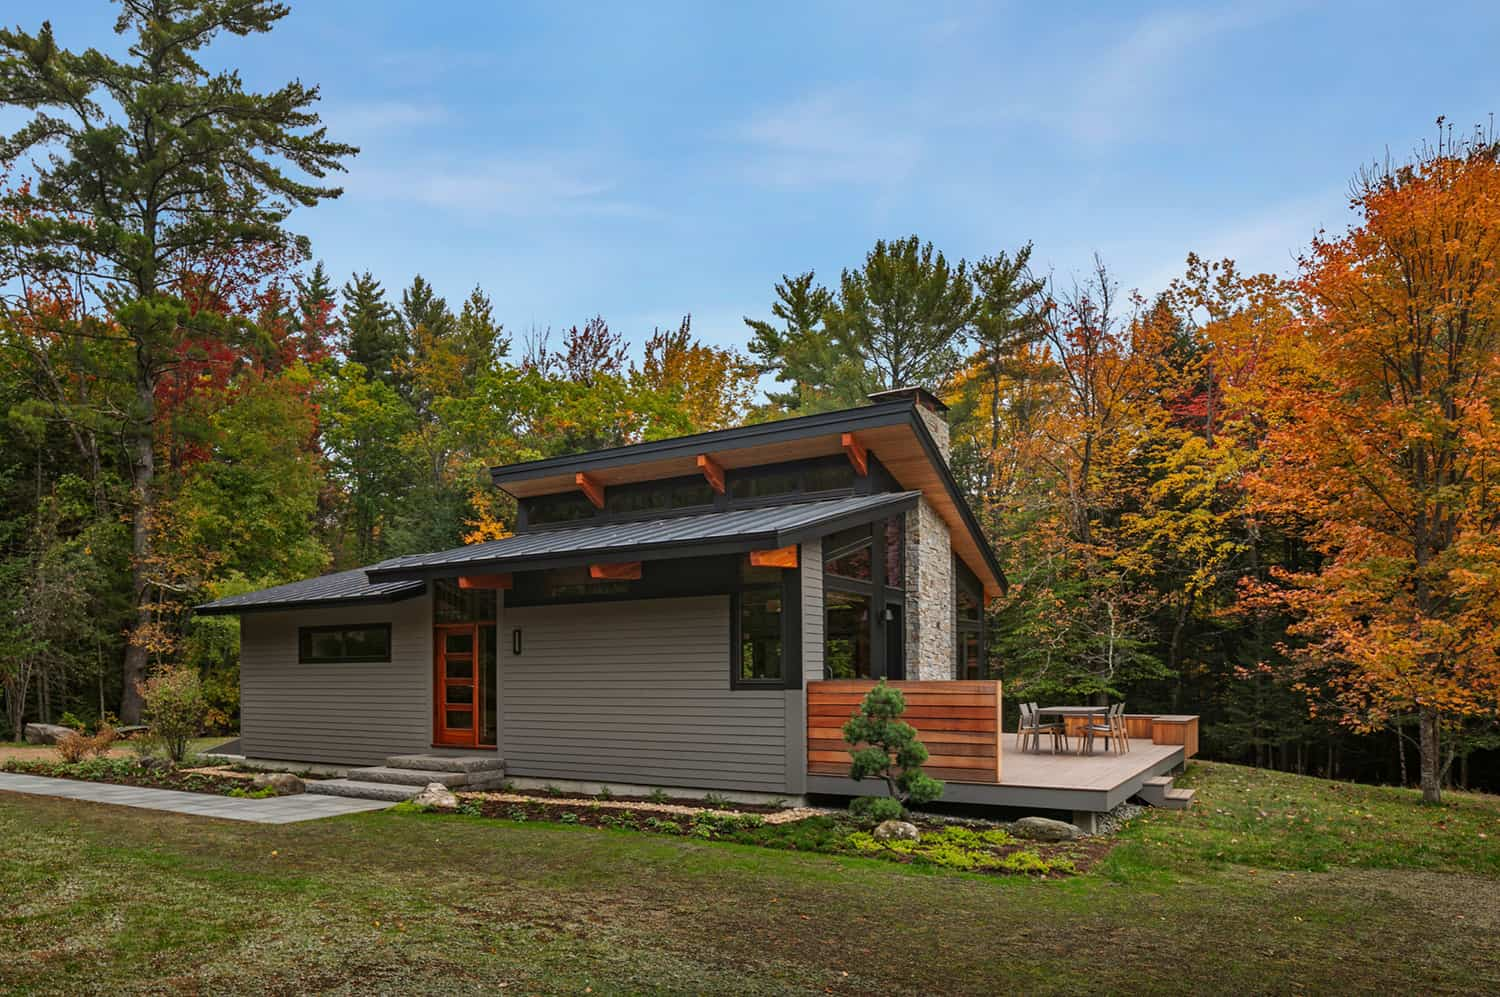 A beautiful midcentury deck house in New Hampshire invites nature inside